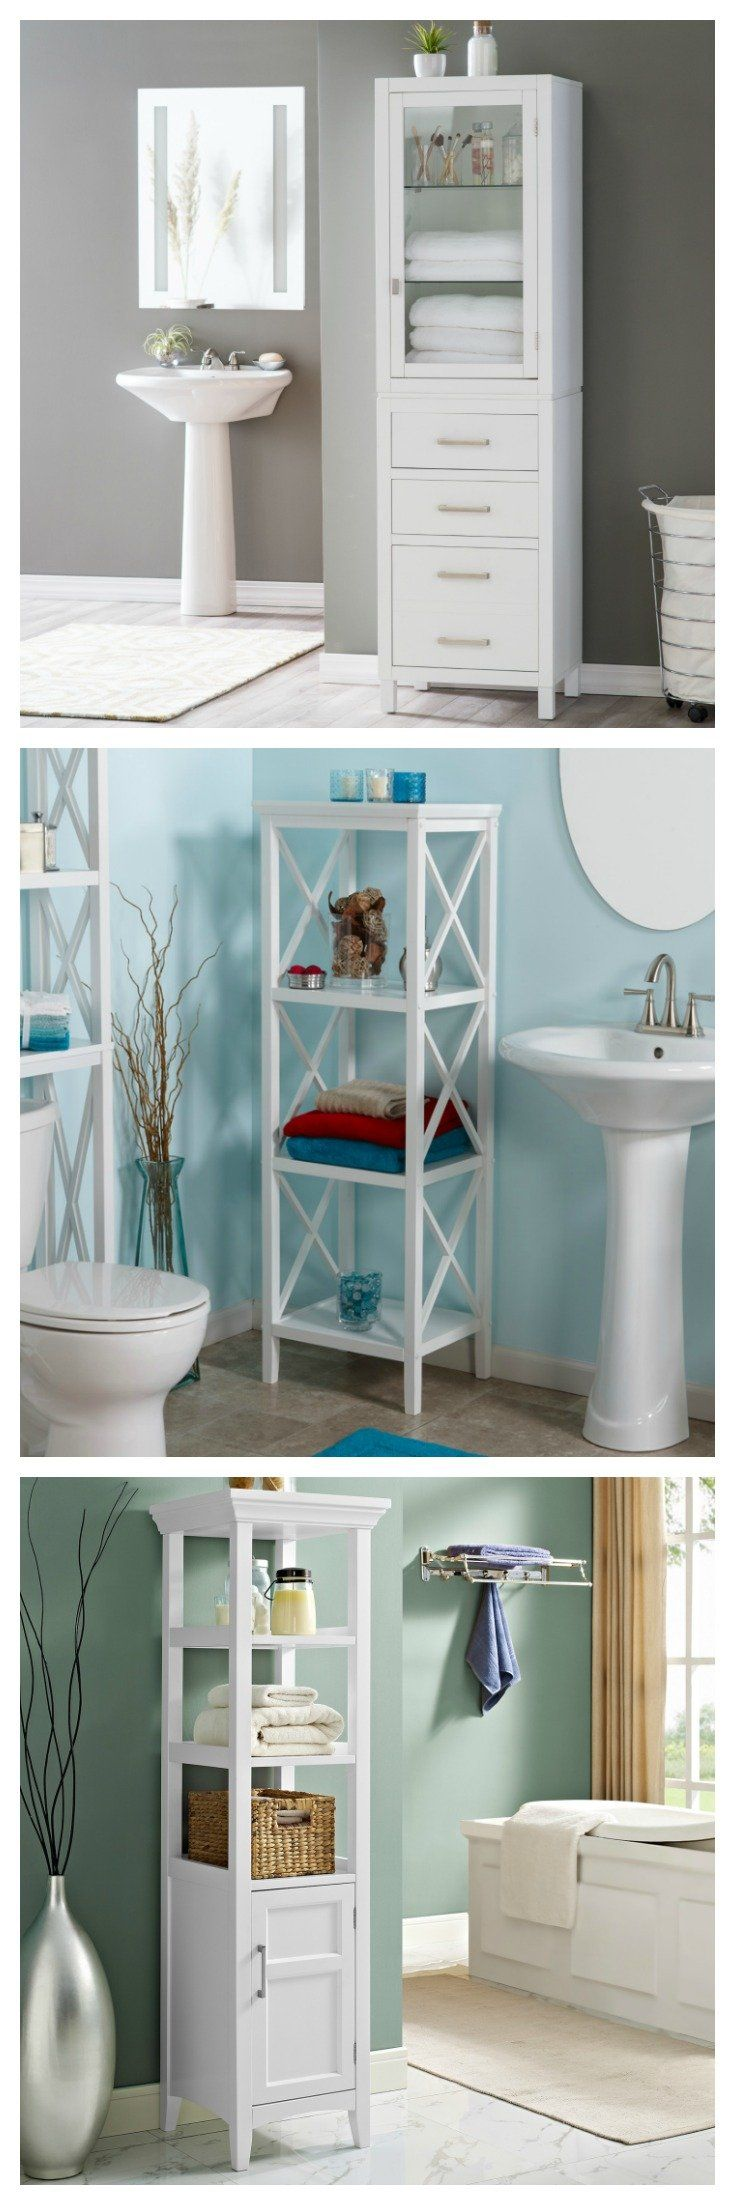 231 best Bliss-out Your Bathroom images on Pinterest   Bathroom ...